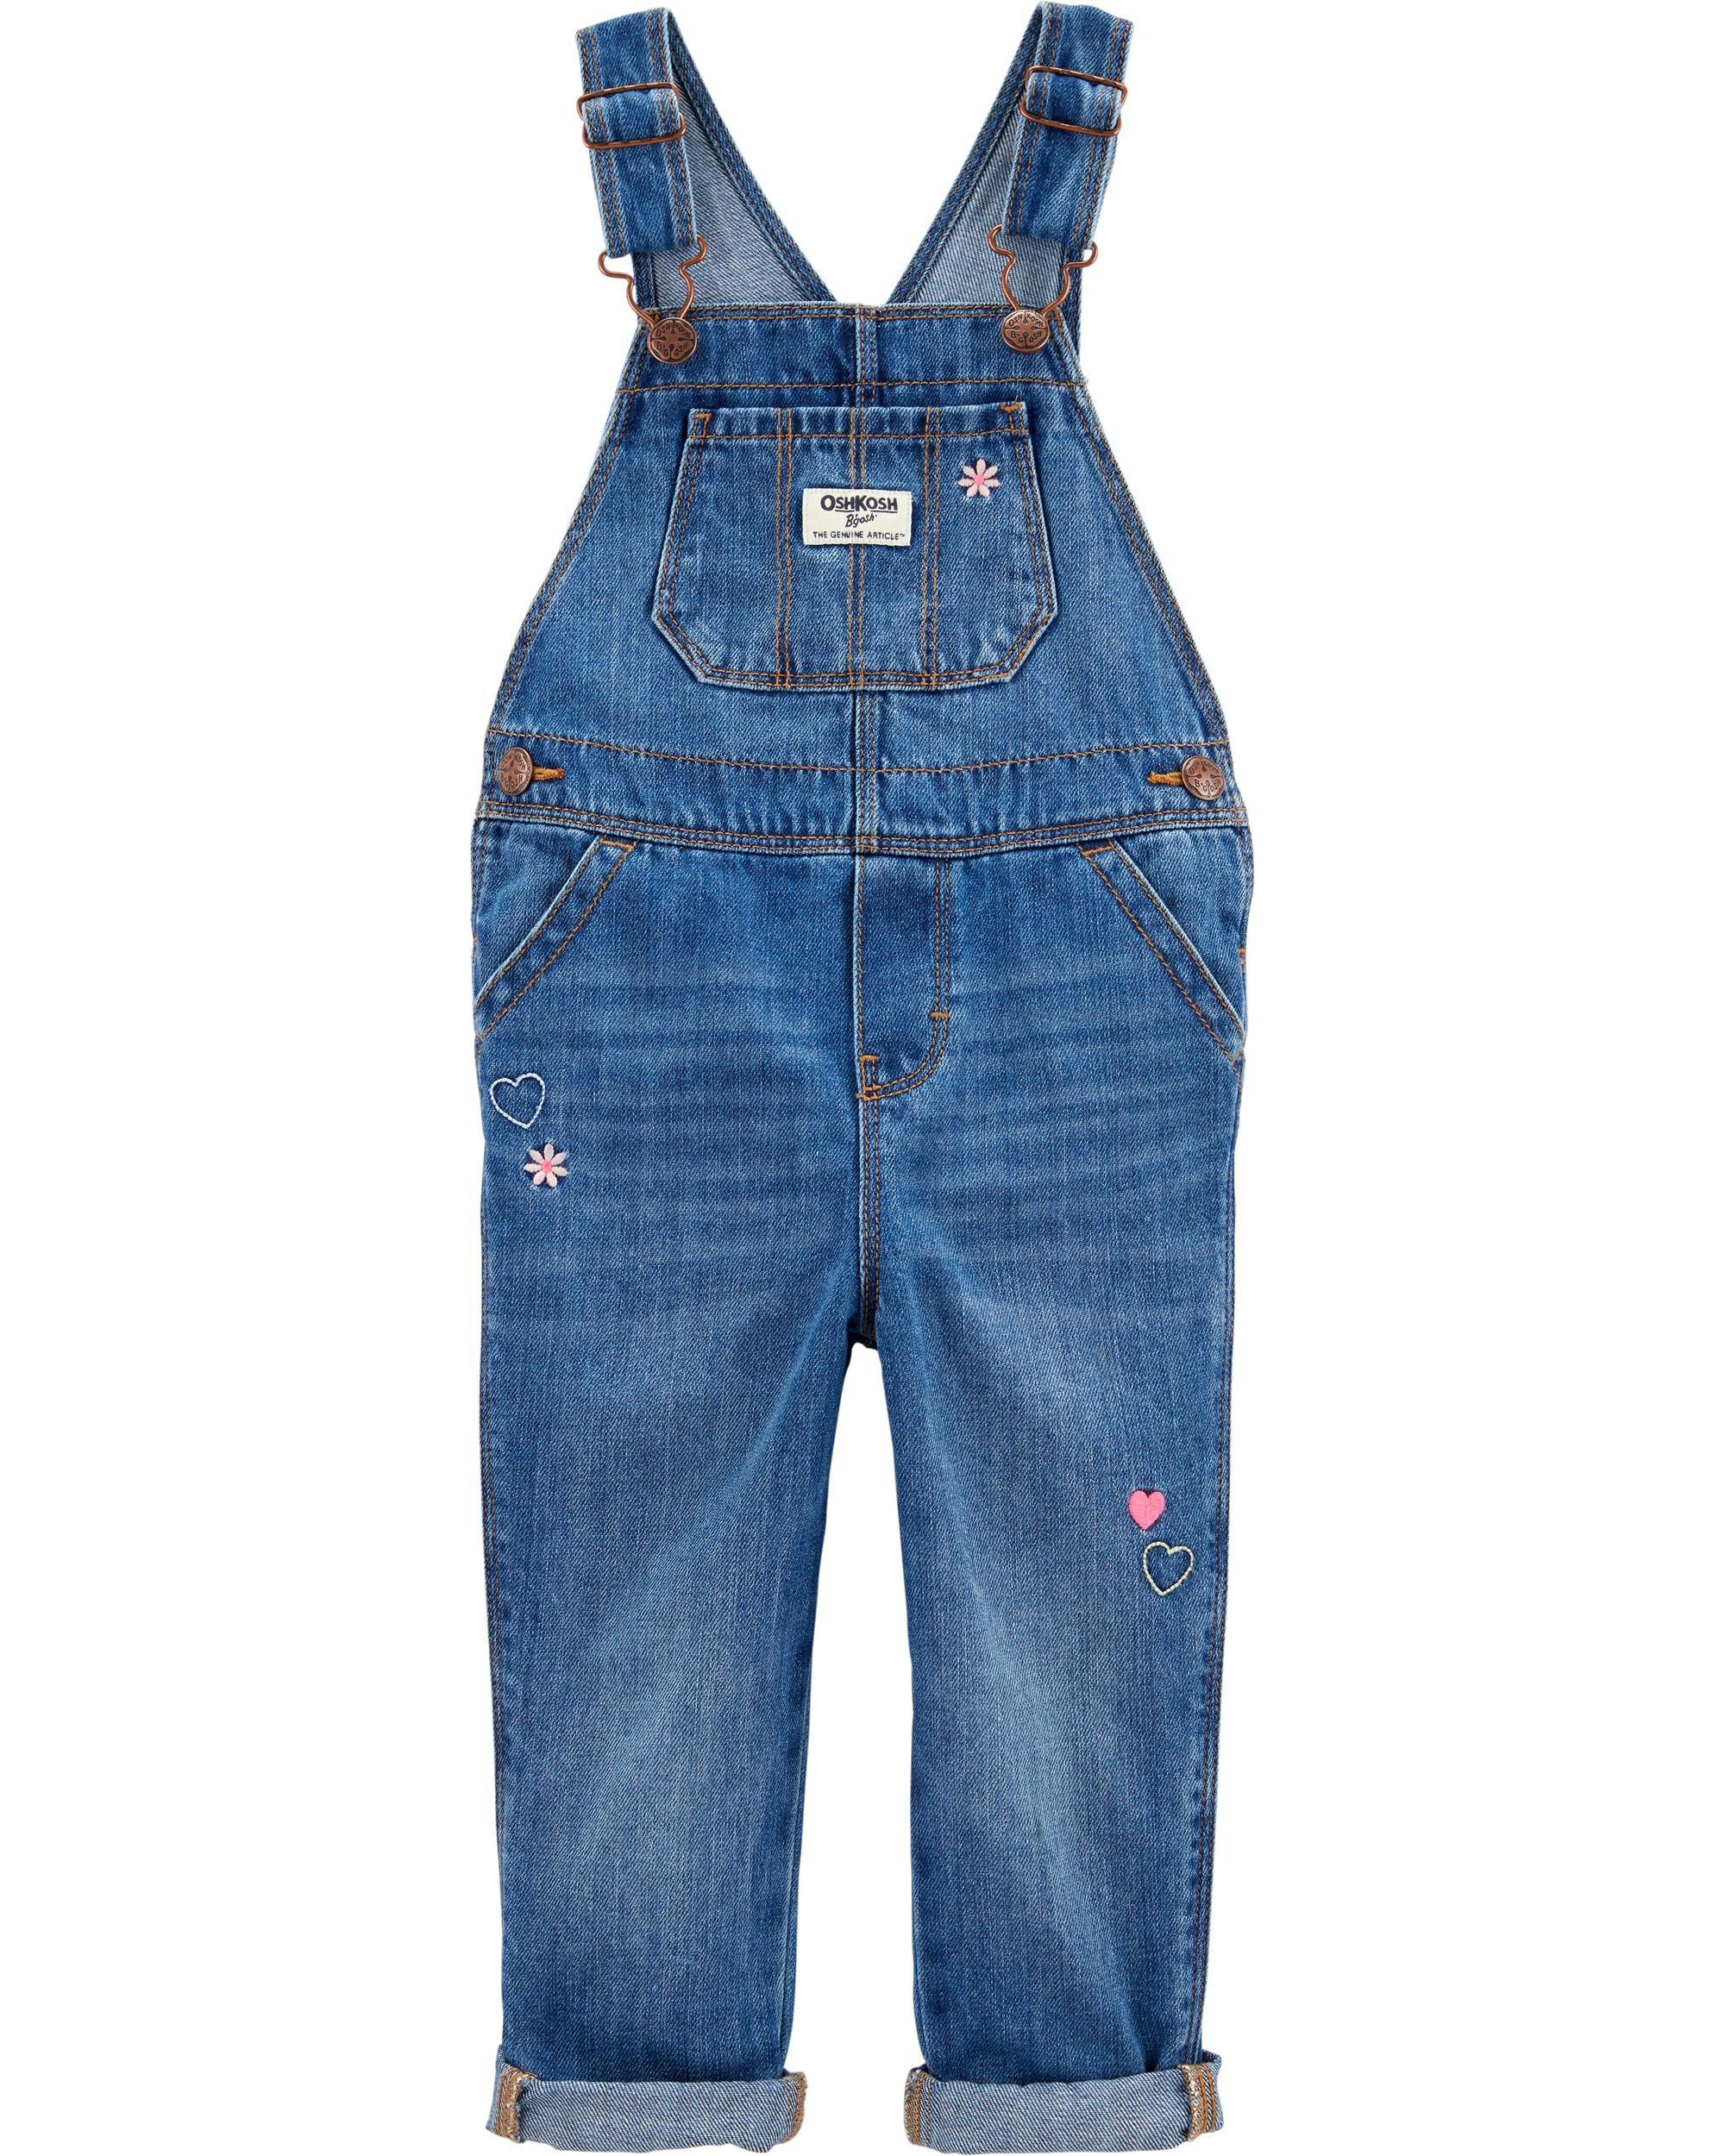 Cheap Price Kids 24 Mo Osh Kosh Denim Blue Jeans Overalls Butterfly Embroidered Farmer Baby Girls' Clothing (newborn-5t) Baby & Toddler Clothing